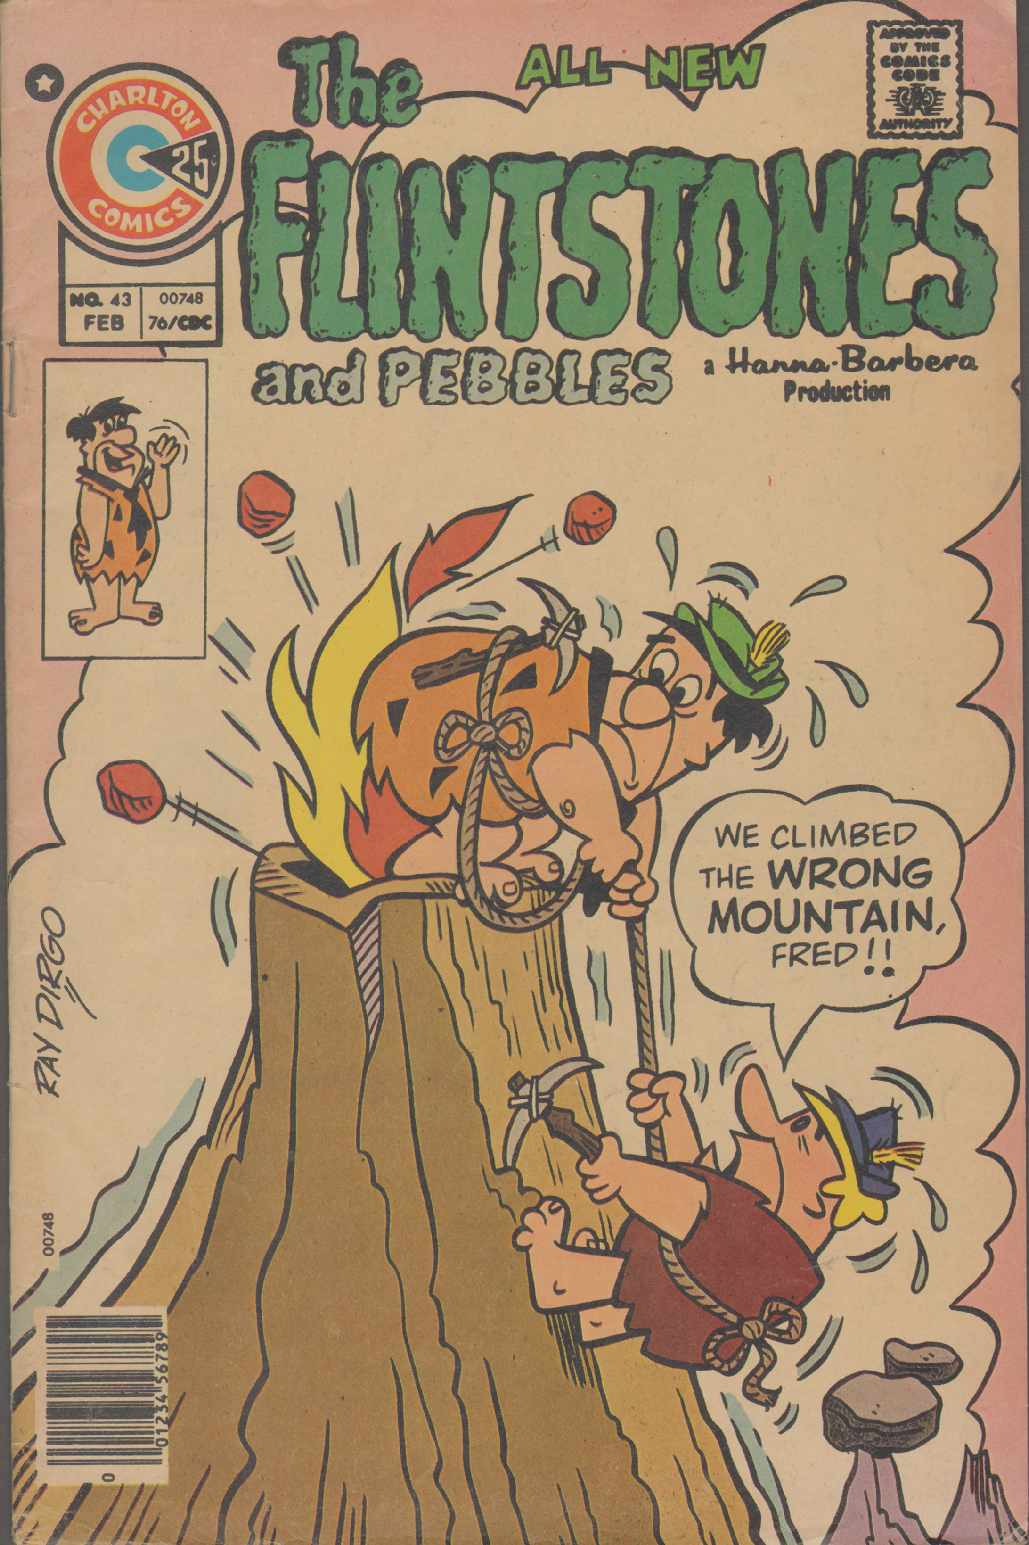 Image for THE ALL NEW FLINTSTONES And Pebbles Vol. 7, No. 43 February 1976